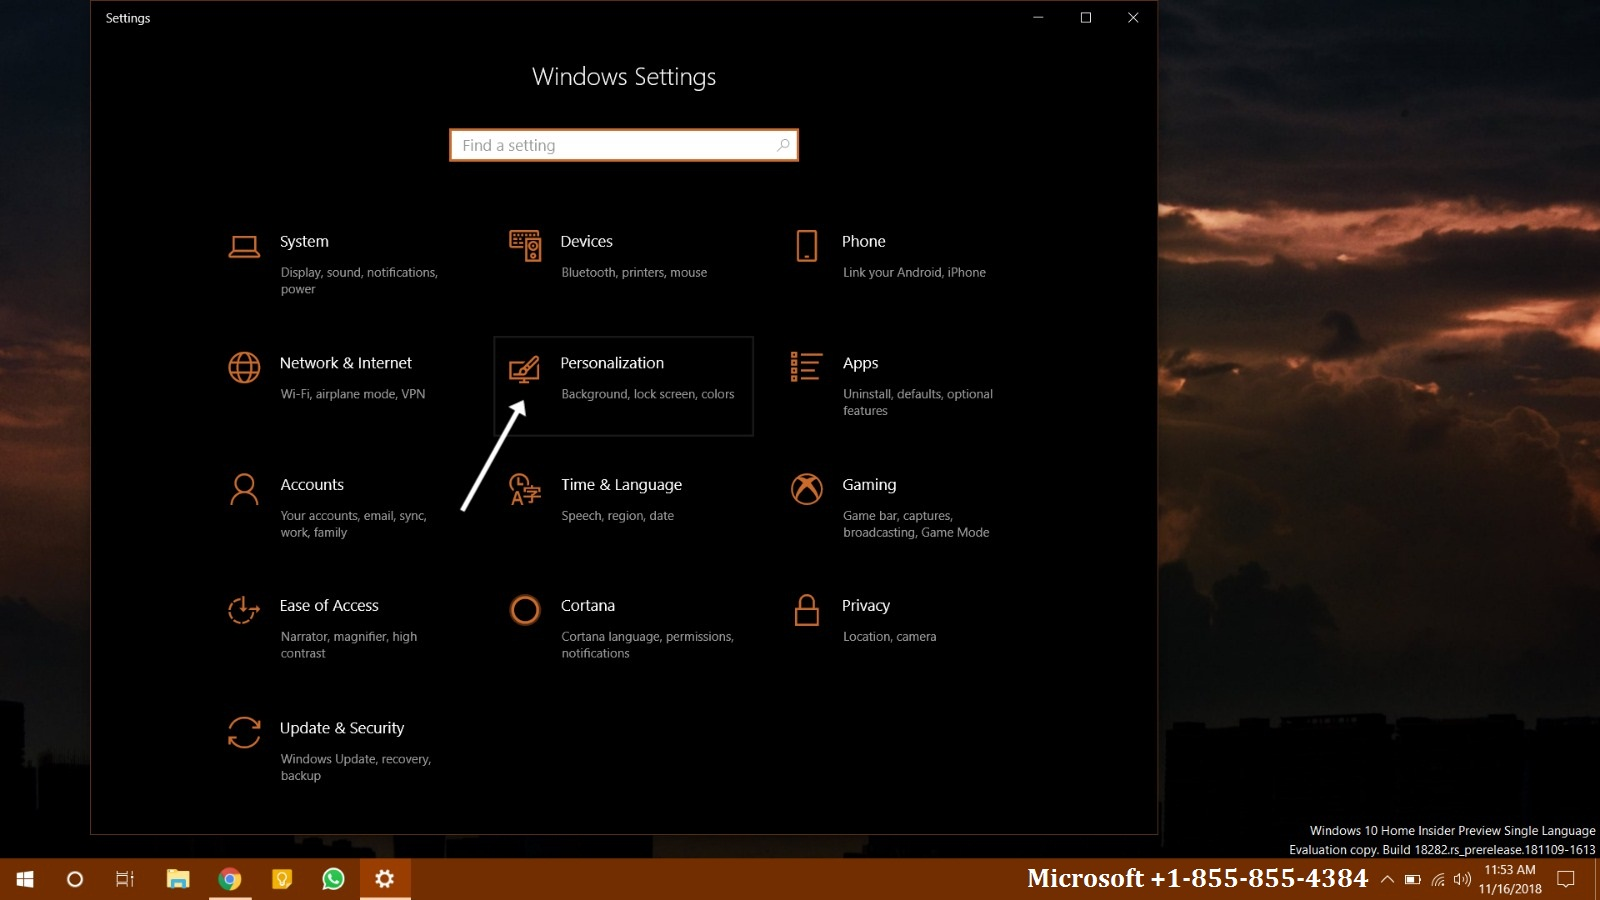 How To Enable Light Theme in Windows 10 Insider Preview